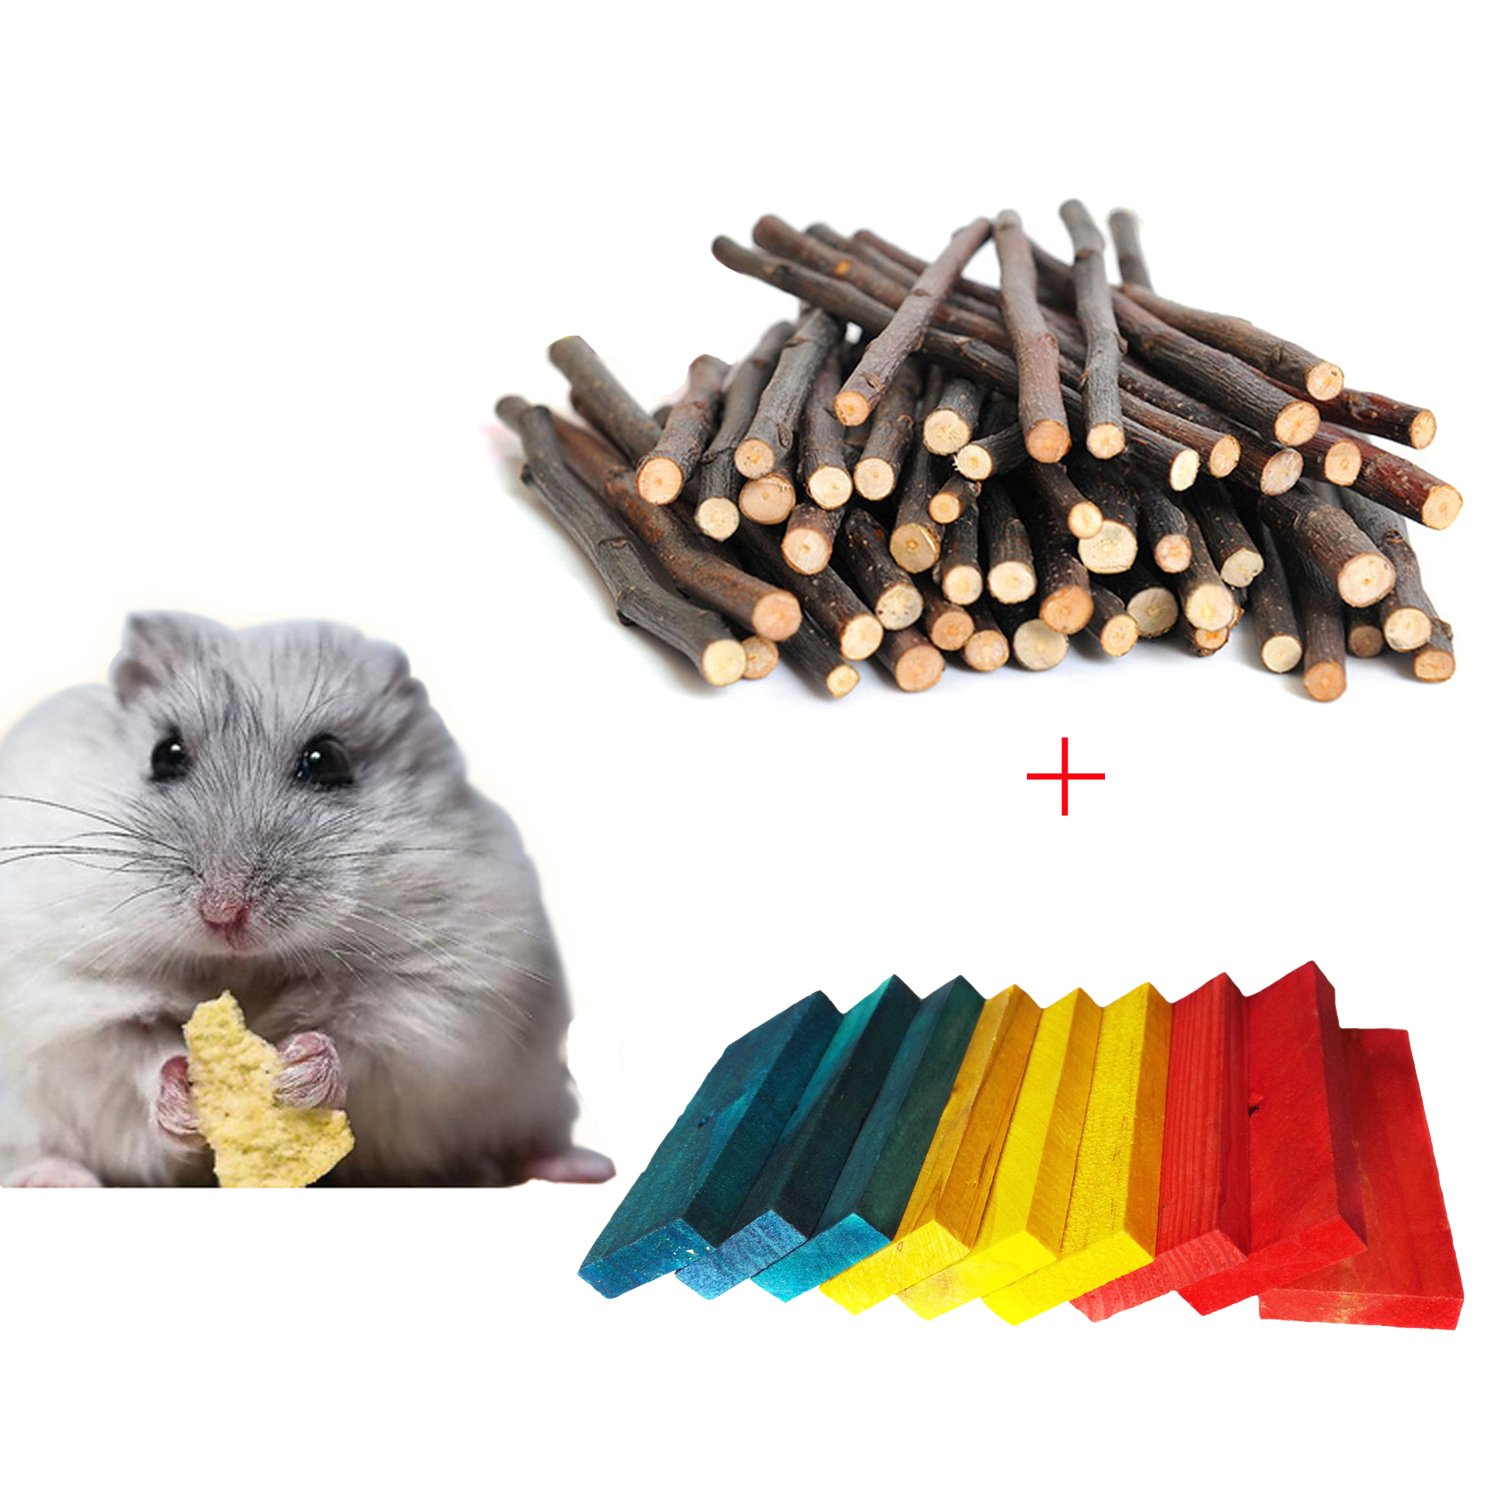 Bwogue Hamster Chew Sticks,100G Natural Apple Branch & 9pcs Colored Wood Chews Sticks Molar Teeth Toy for Small Pets Chew Treat